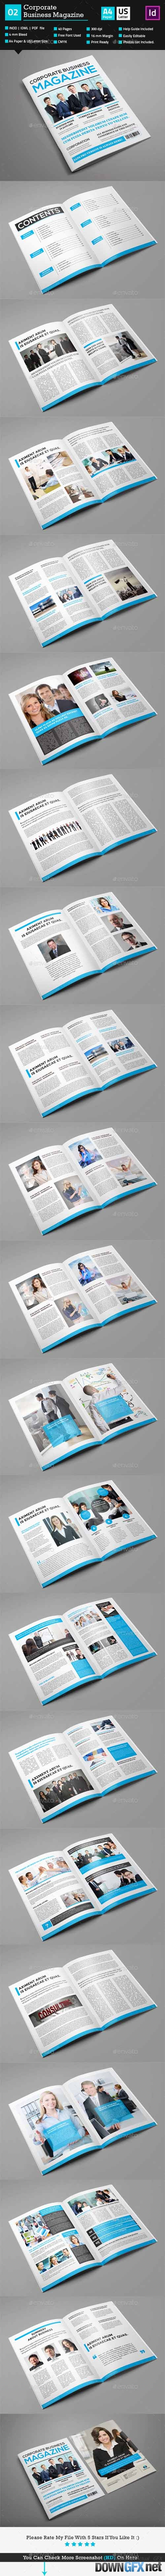 Corporate Business Magazine_Indesign 40 Pages_V2 9789663